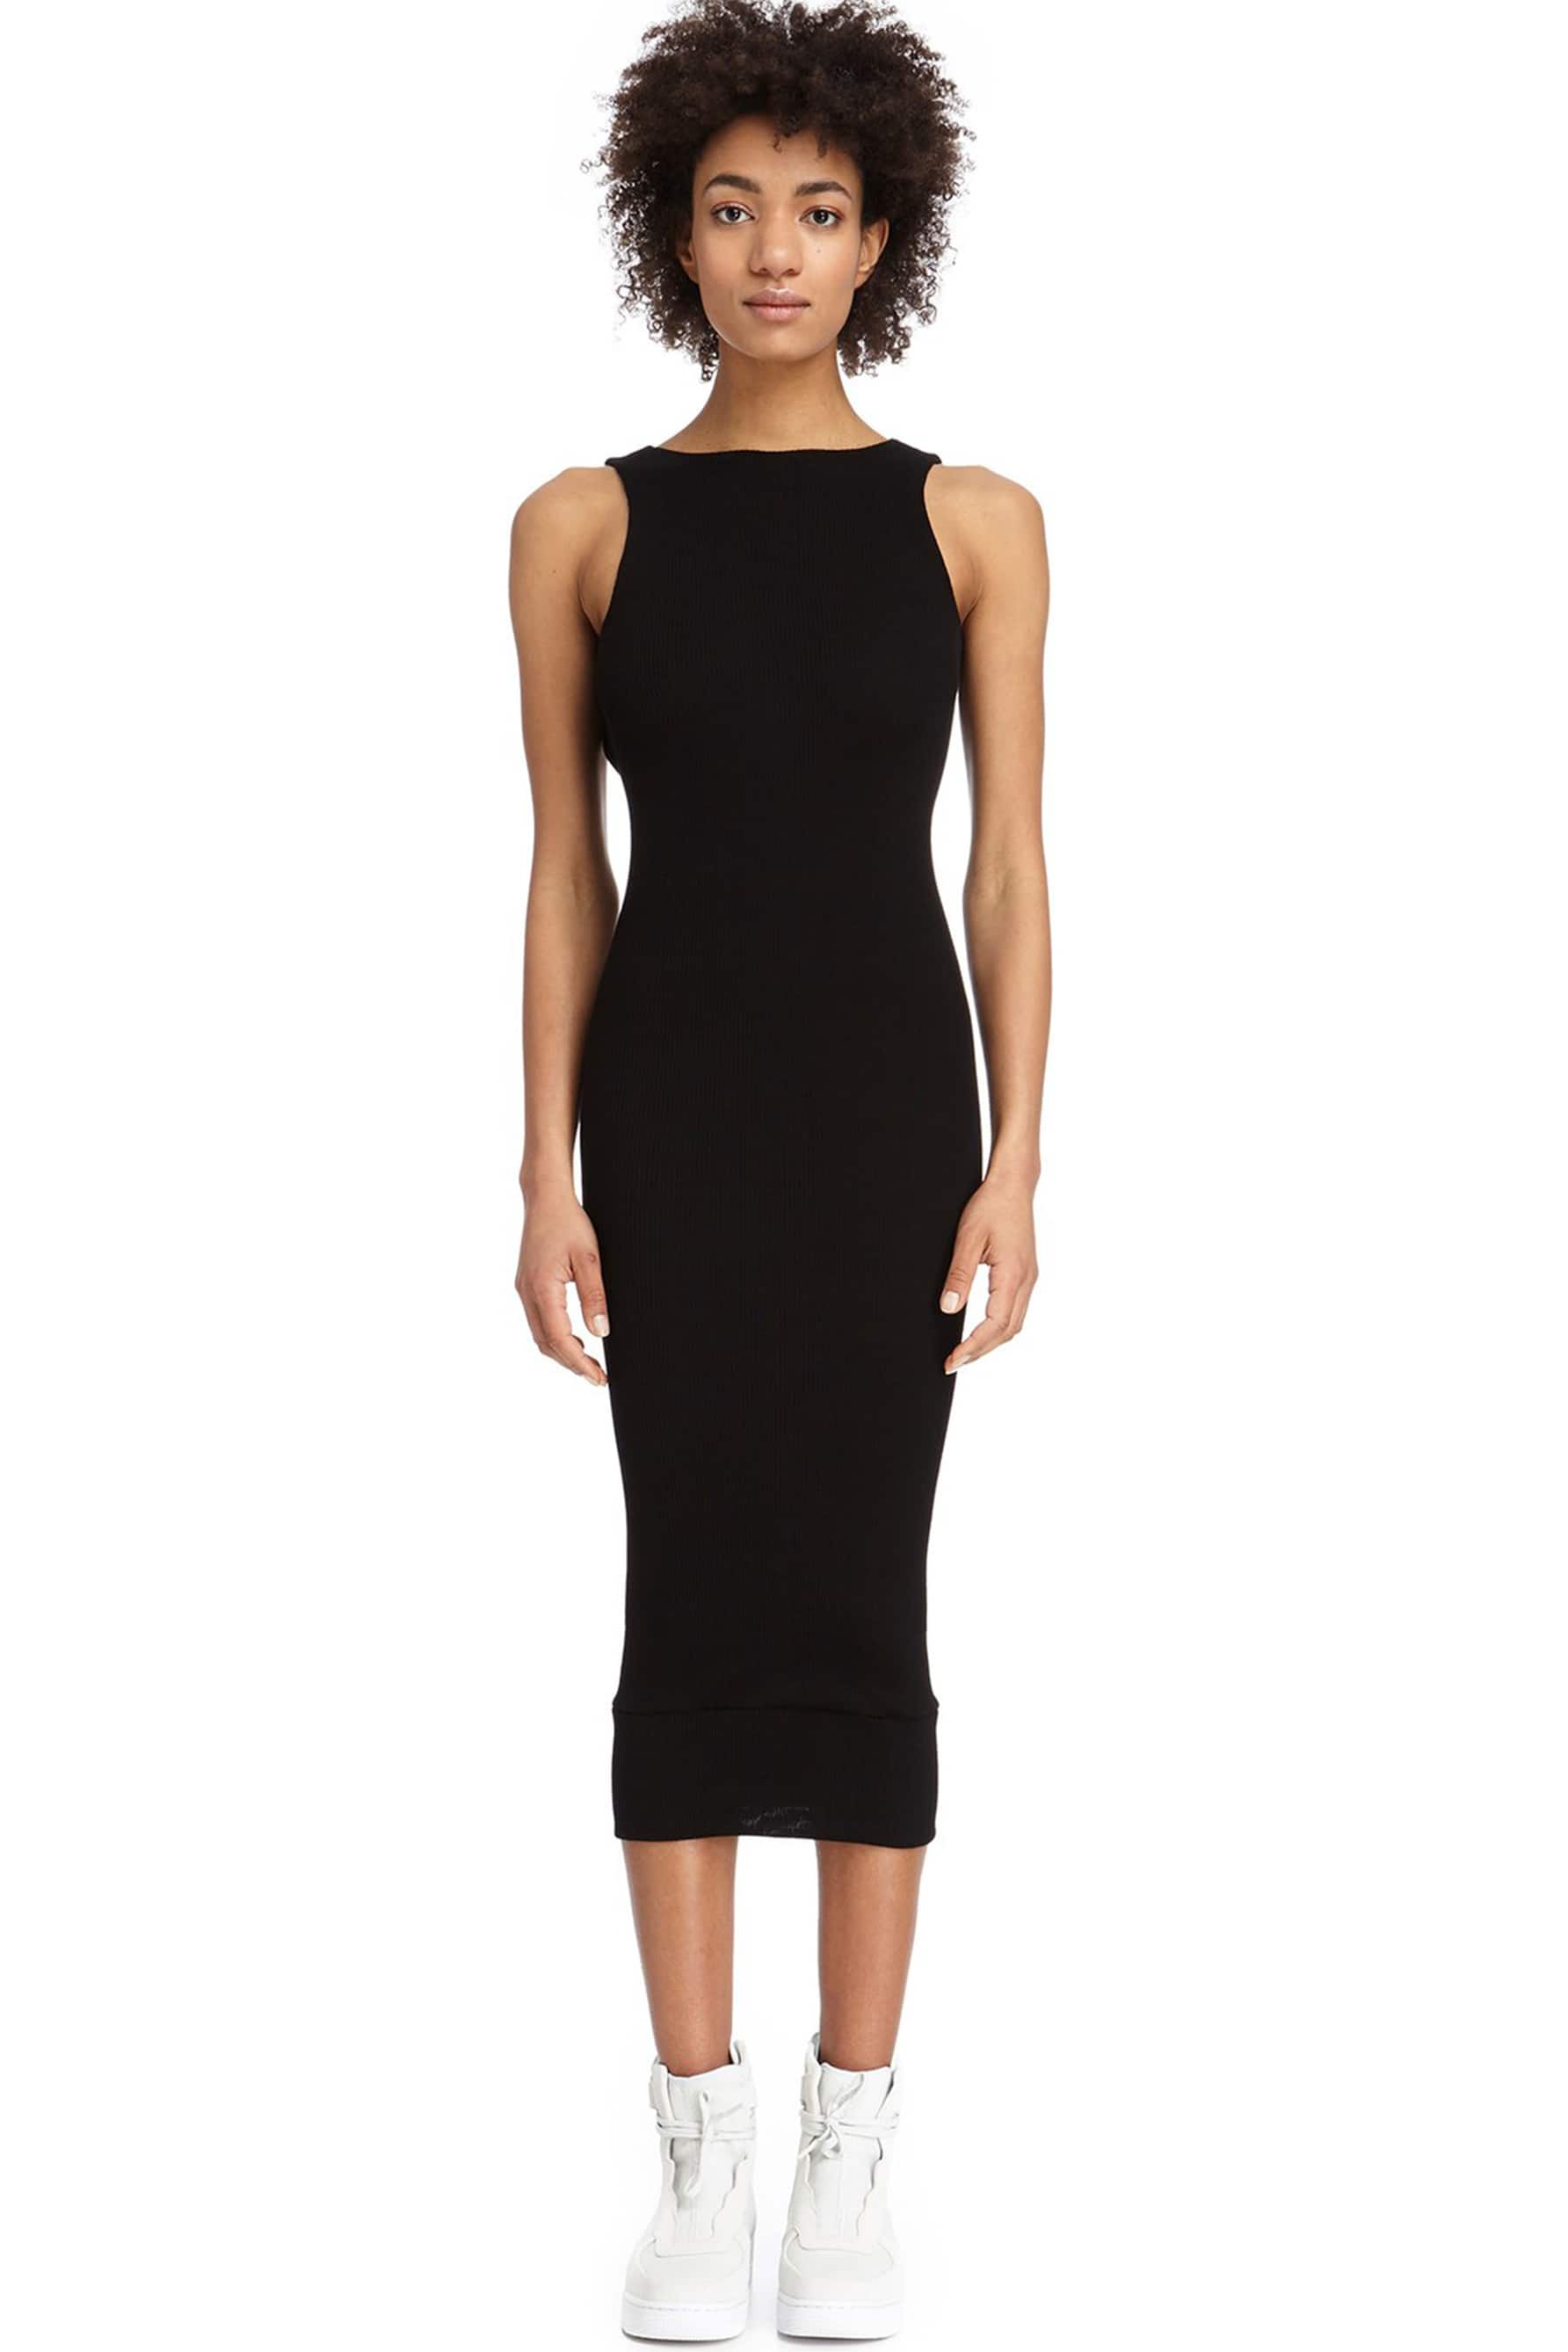 DSTM Chiron wool, silk and cashmere blend reversible sleeveless tank/low back dress in black, front view, shown on model